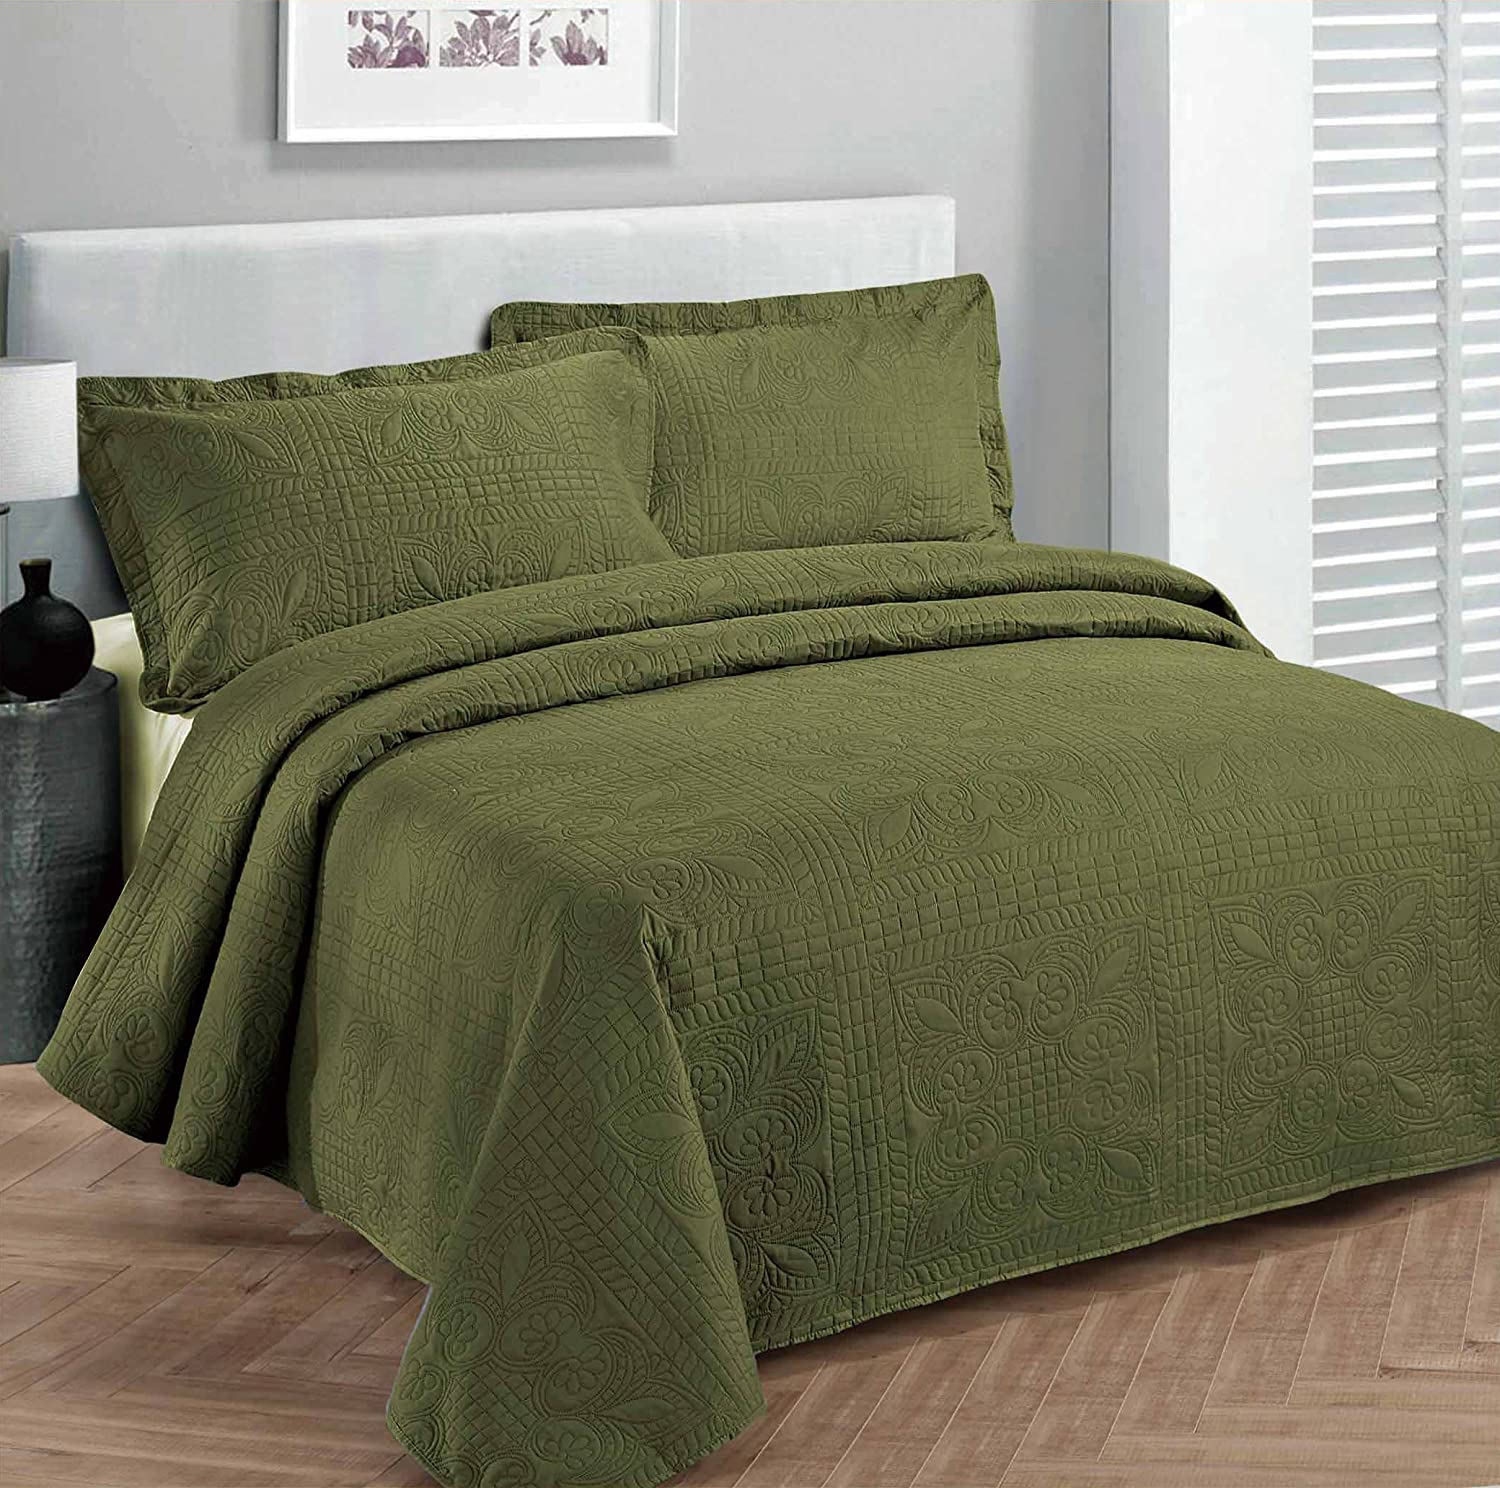 Fancy Collection Luxury 2 Pc Bedspread Bed Coverlet Solid Embossed Reversible Bedding New (Twin, Coffee/Taupe)